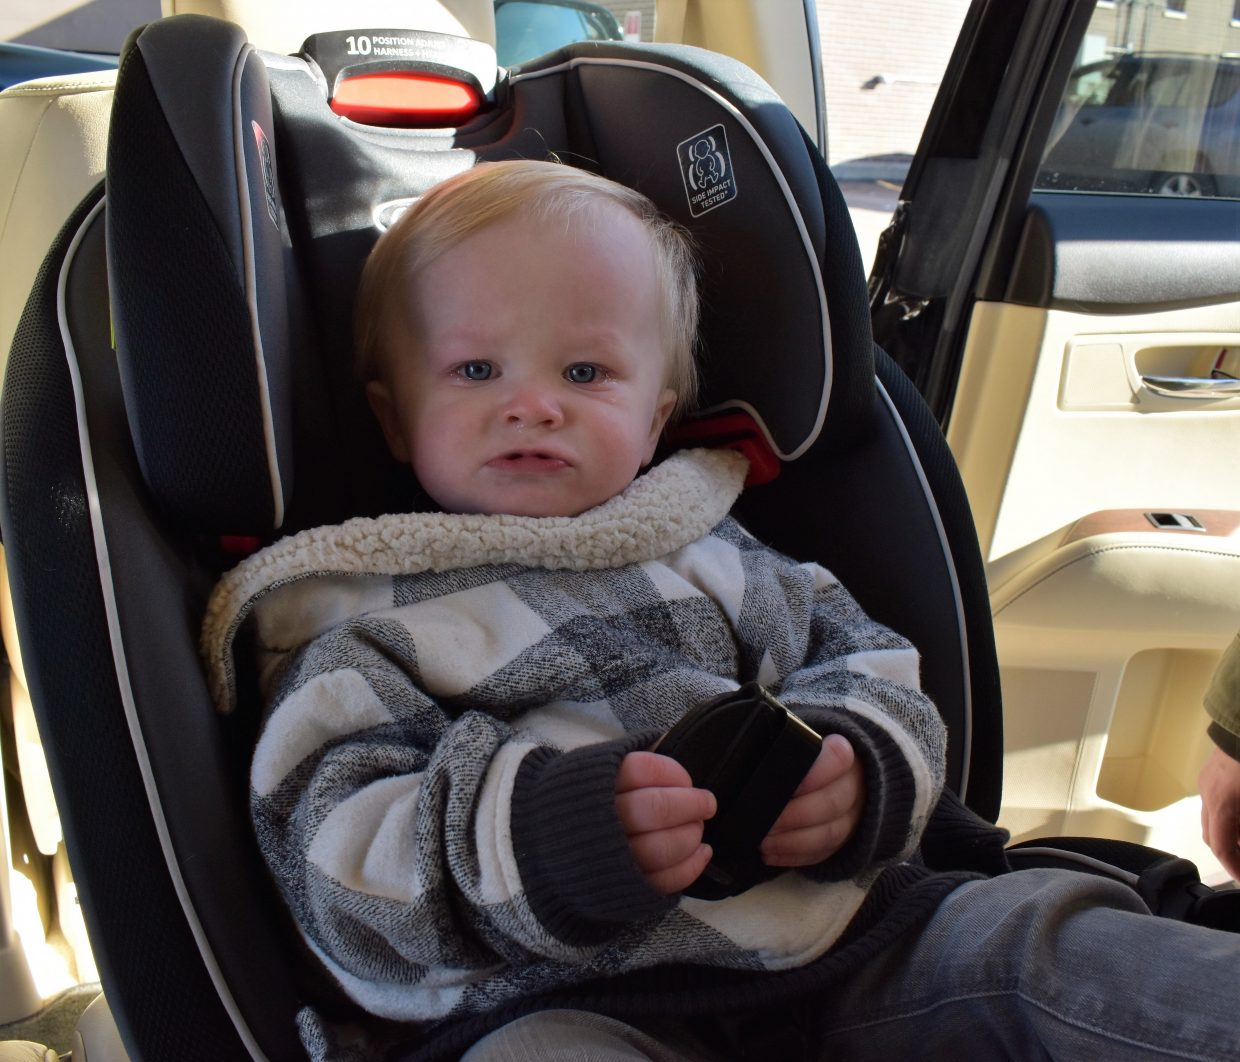 Winter coats hazardous to children riding in car seats ...